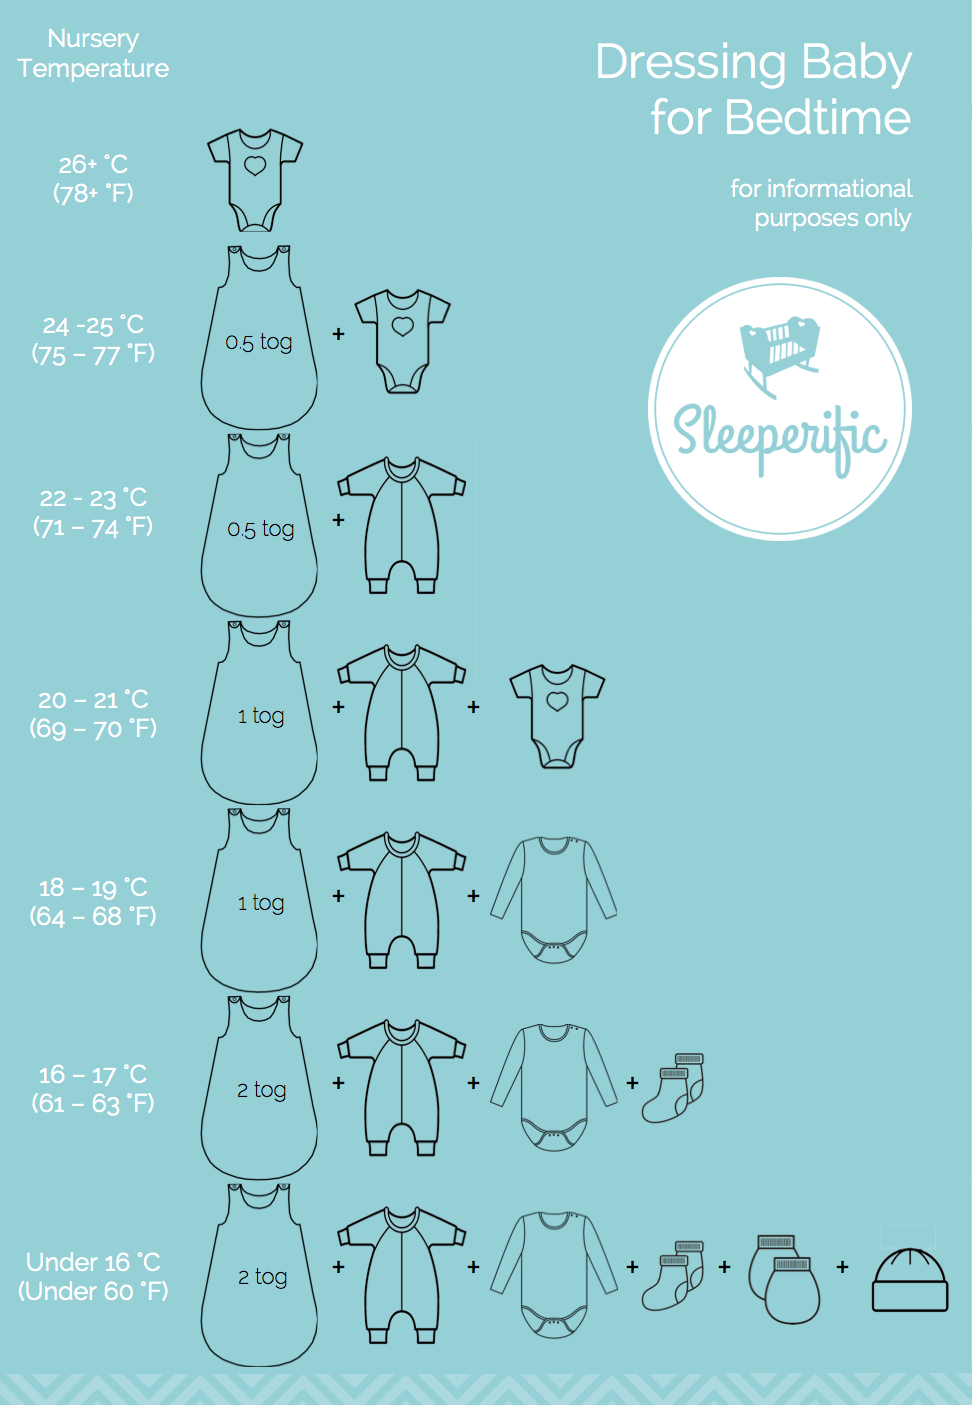 Dressing baby for sleep sleeperific children 39 s sleep consulting - Temperature chambre bebe nuit ...